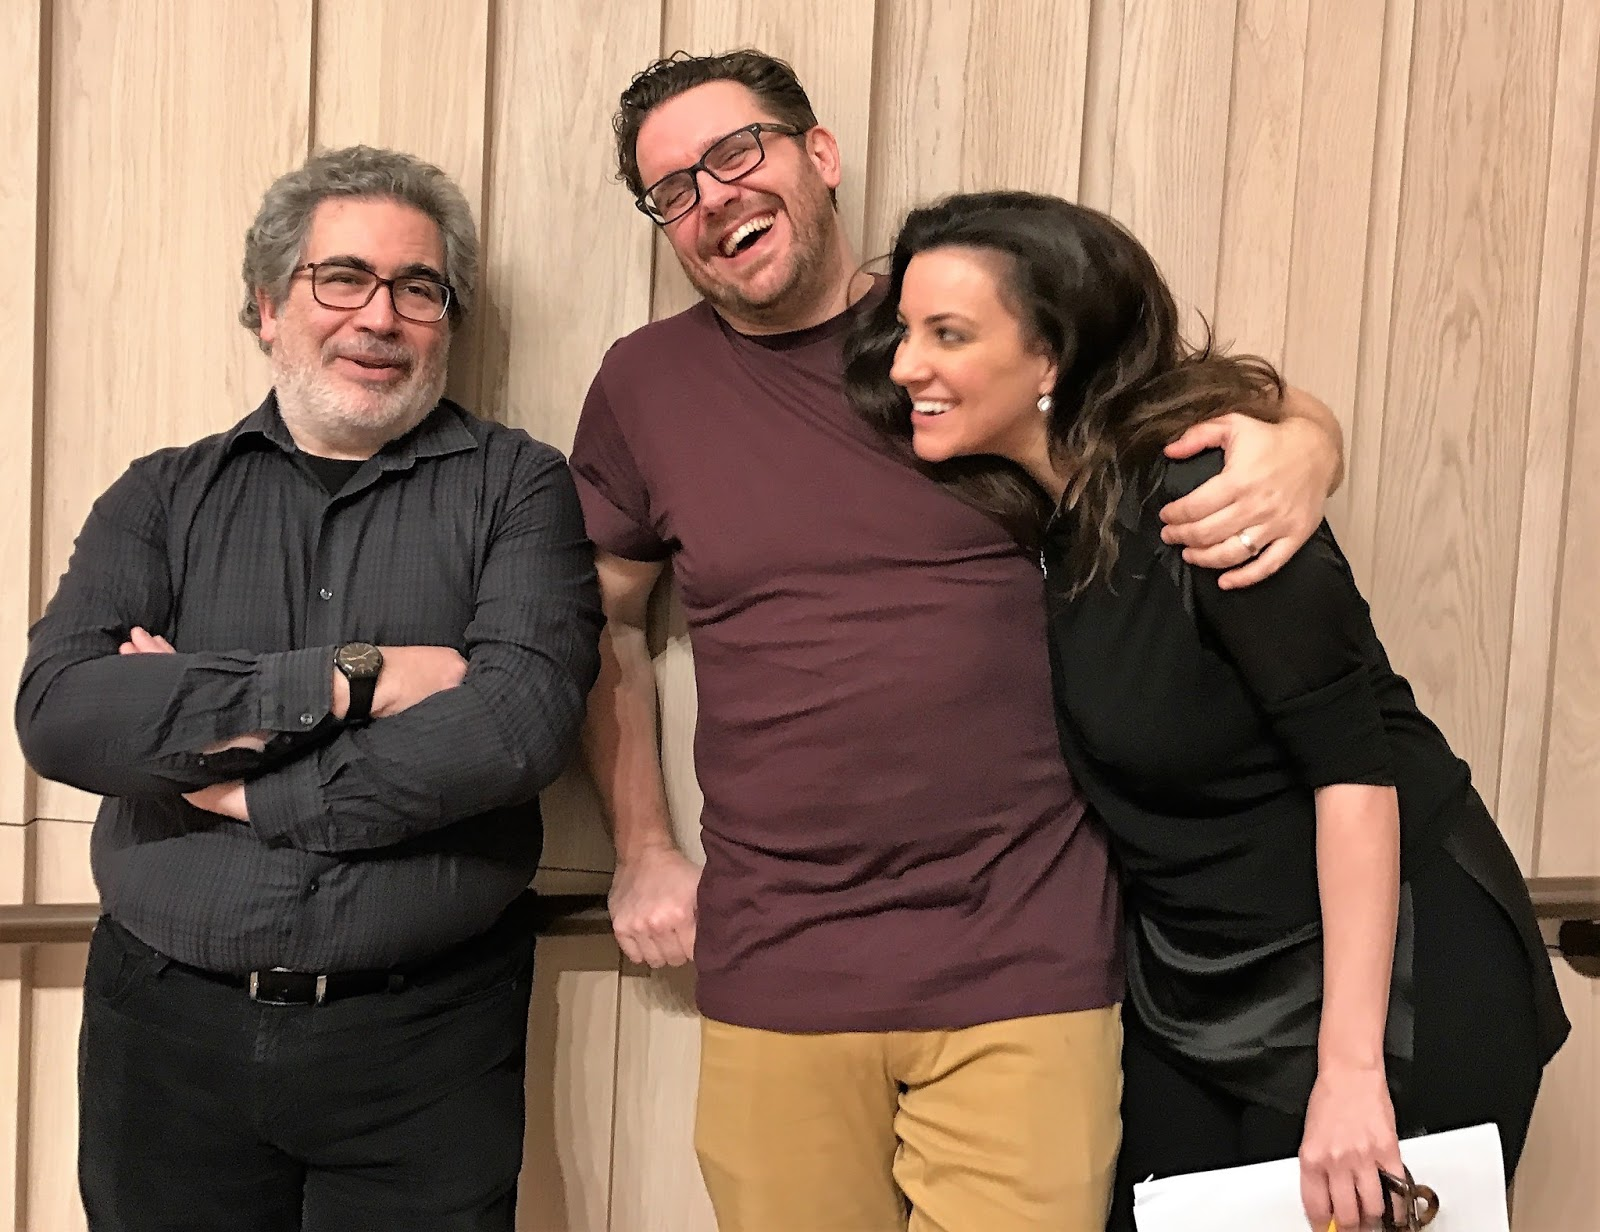 IN REVIEW: Opera Rara's bel canto team of (from left to right) conductor CARLO RIZZI, tenor MICHAEL SPYRES, and soprano JOYCE EL-KHOURY [Photo by Henry Little, © by Opera Rara]